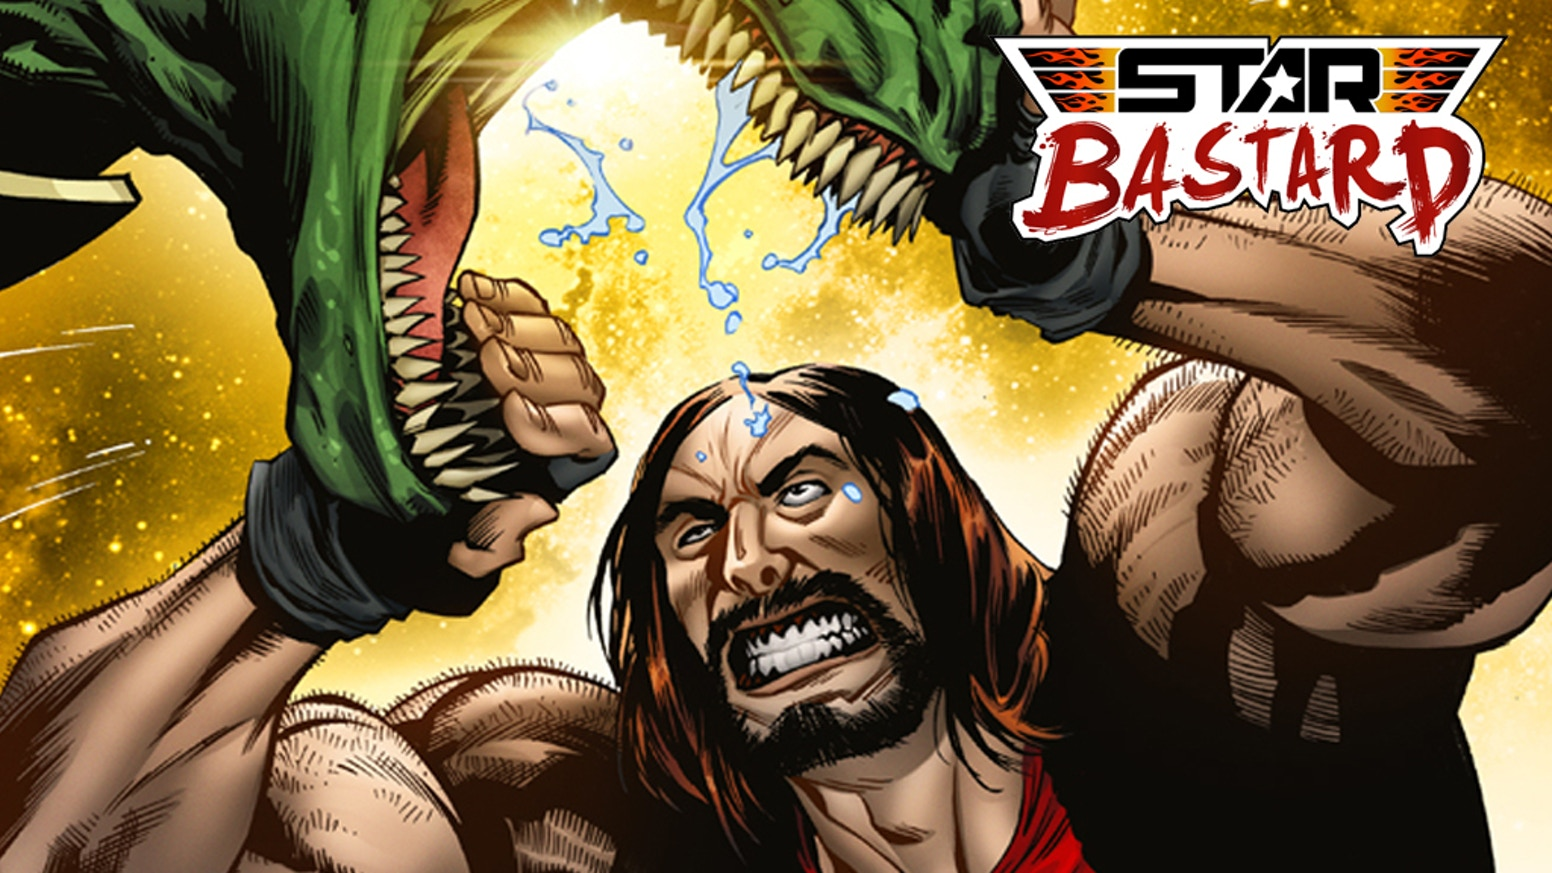 Ever wanted to see a man punch a talking dinosaur mercenary in the face? Heres your chance!